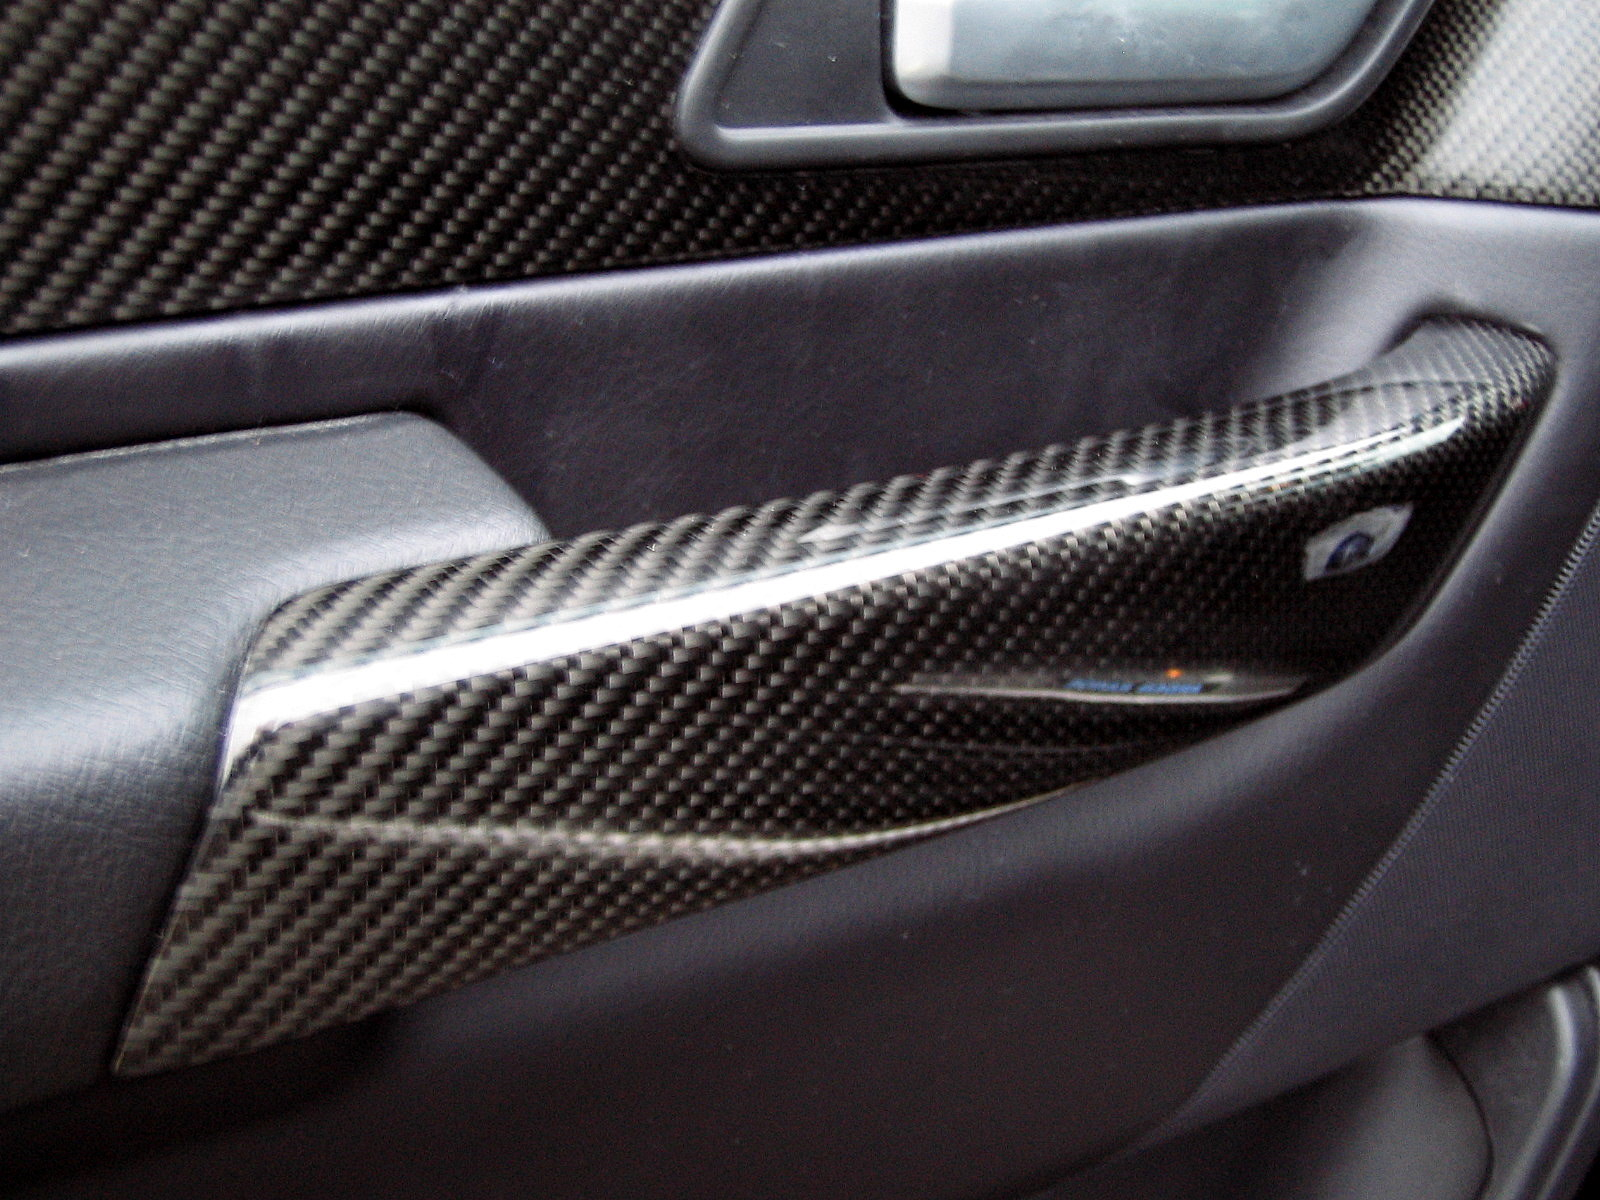 Black Carbon Fibre interior DOOR HANDLE PULL KIT for Range Rover